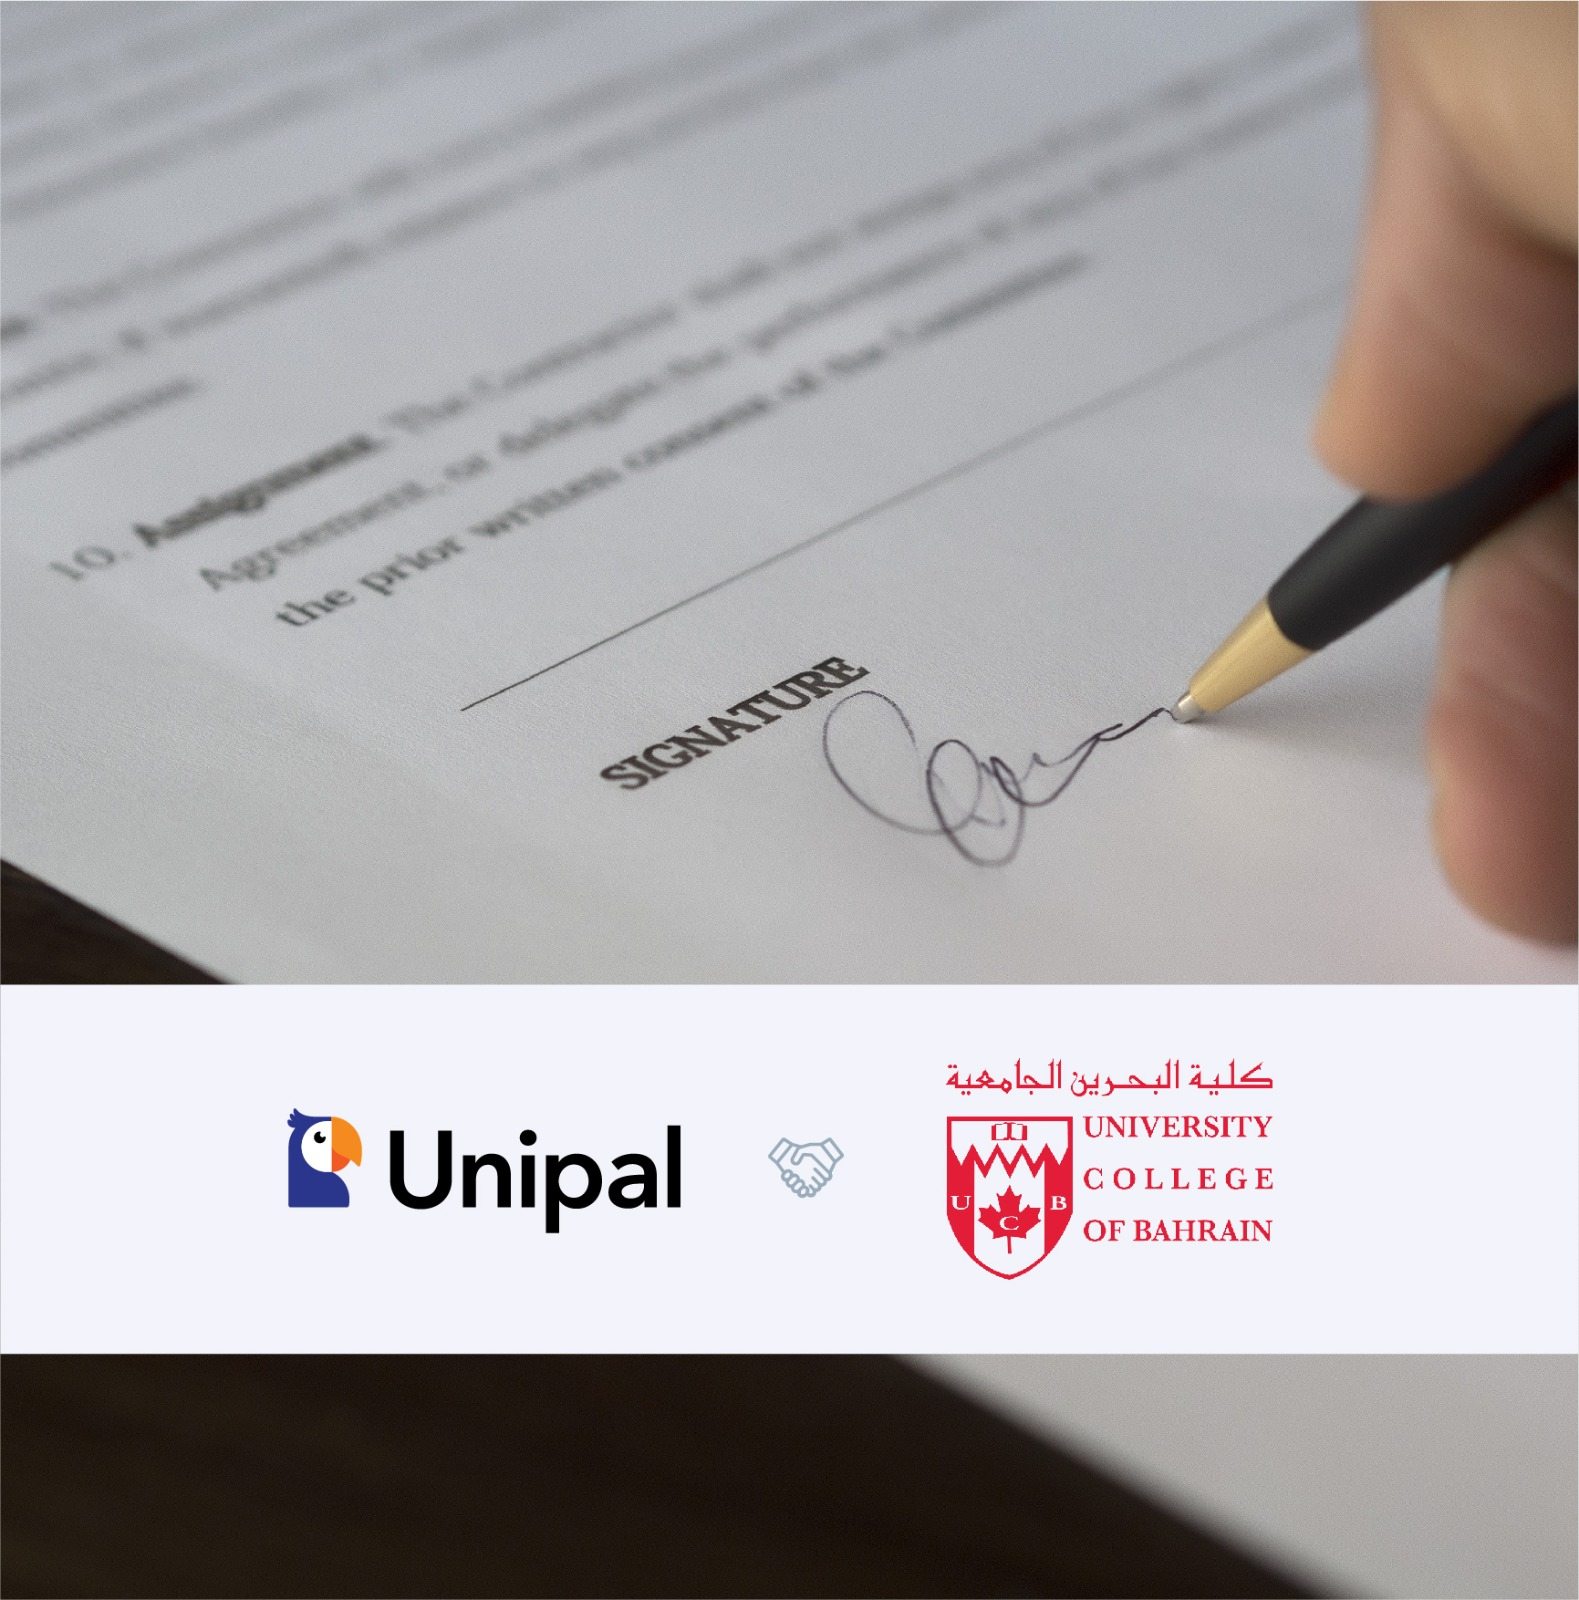 Unipal announces second major partnership in a week blog